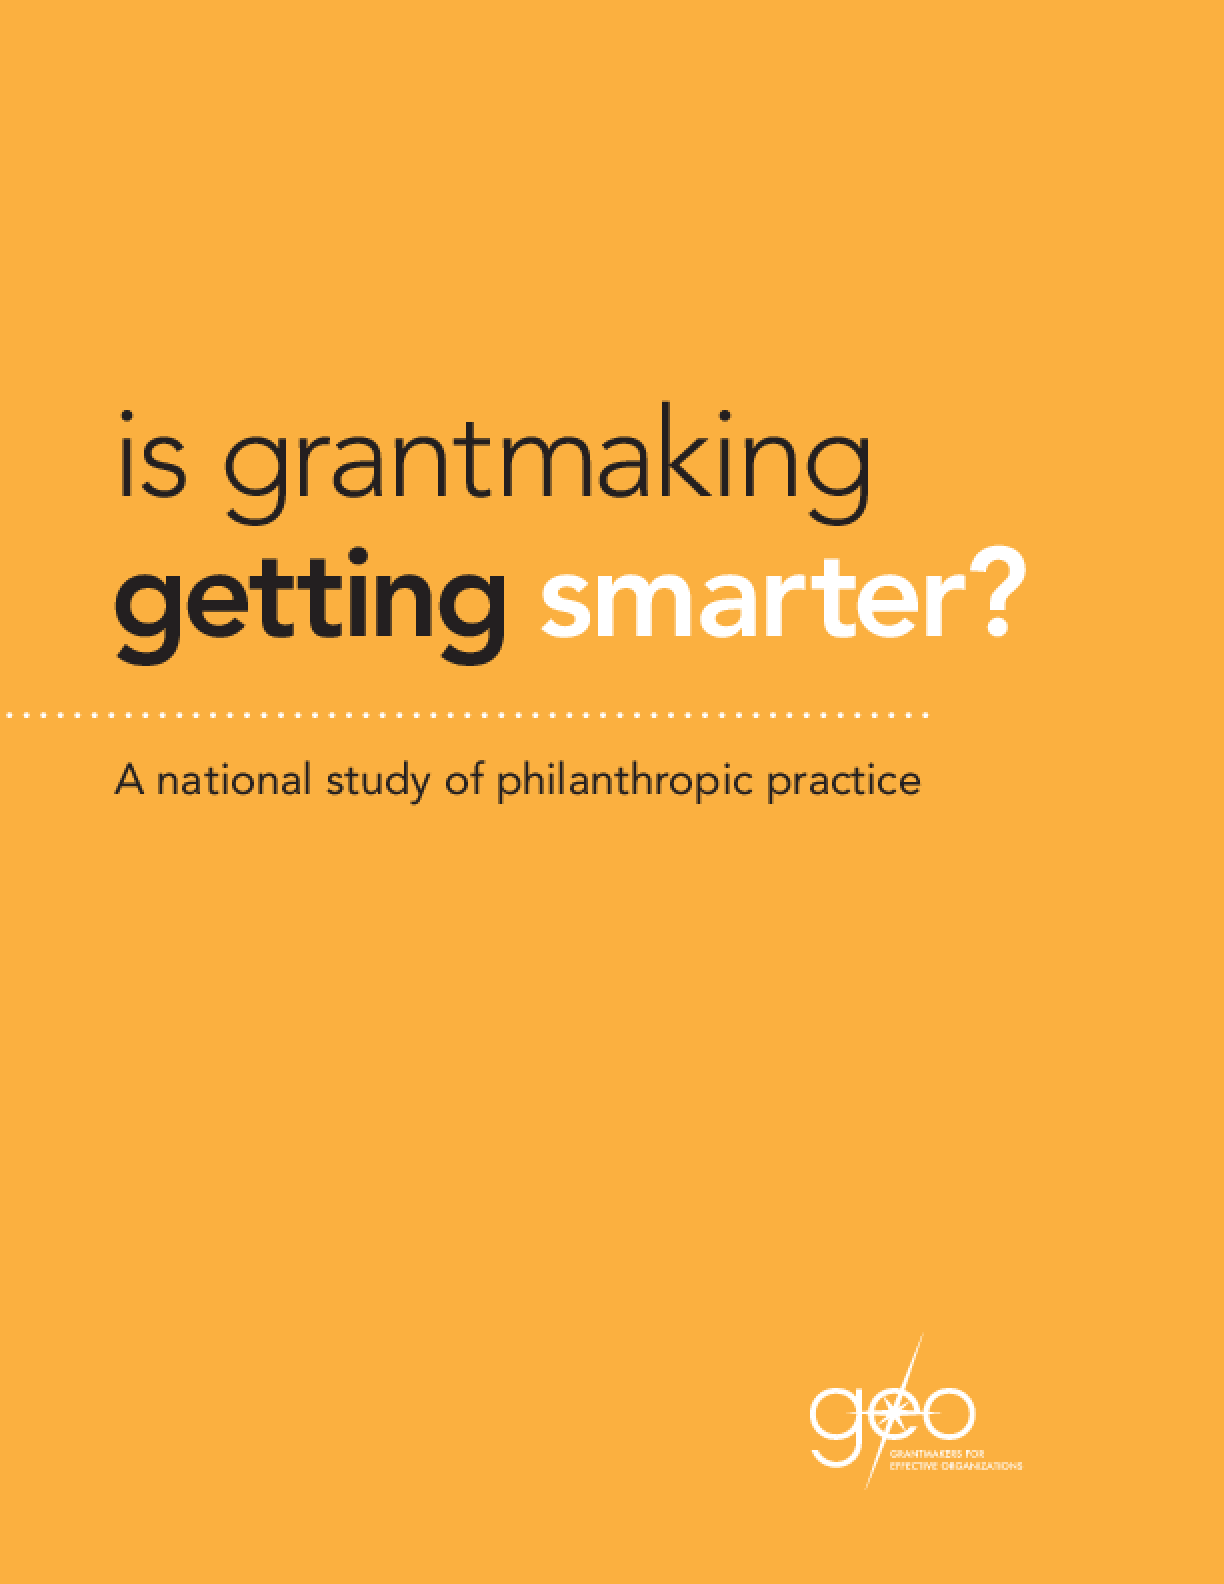 Is Grantmaking Getting Smarter? A National Study of Philanthropic Practice